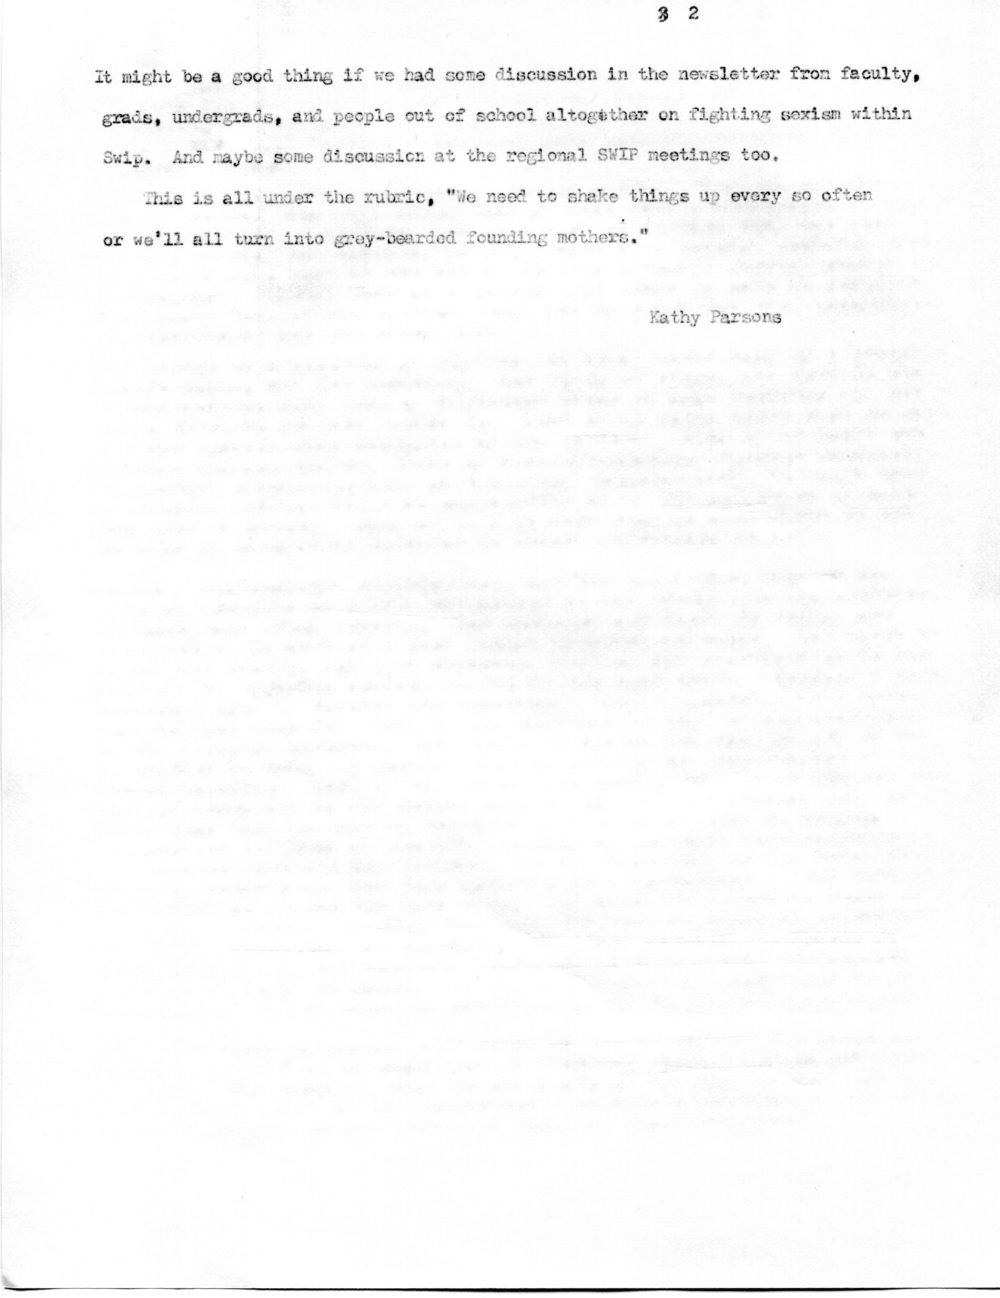 Letter from Kathryn Addelson (formerly Parsons) to the Executive Committee regarding the aims of SWIP, 1977 (2 of 2).  Society for Women in Philosophy Collection, Feminist Theory Archive, Brown University